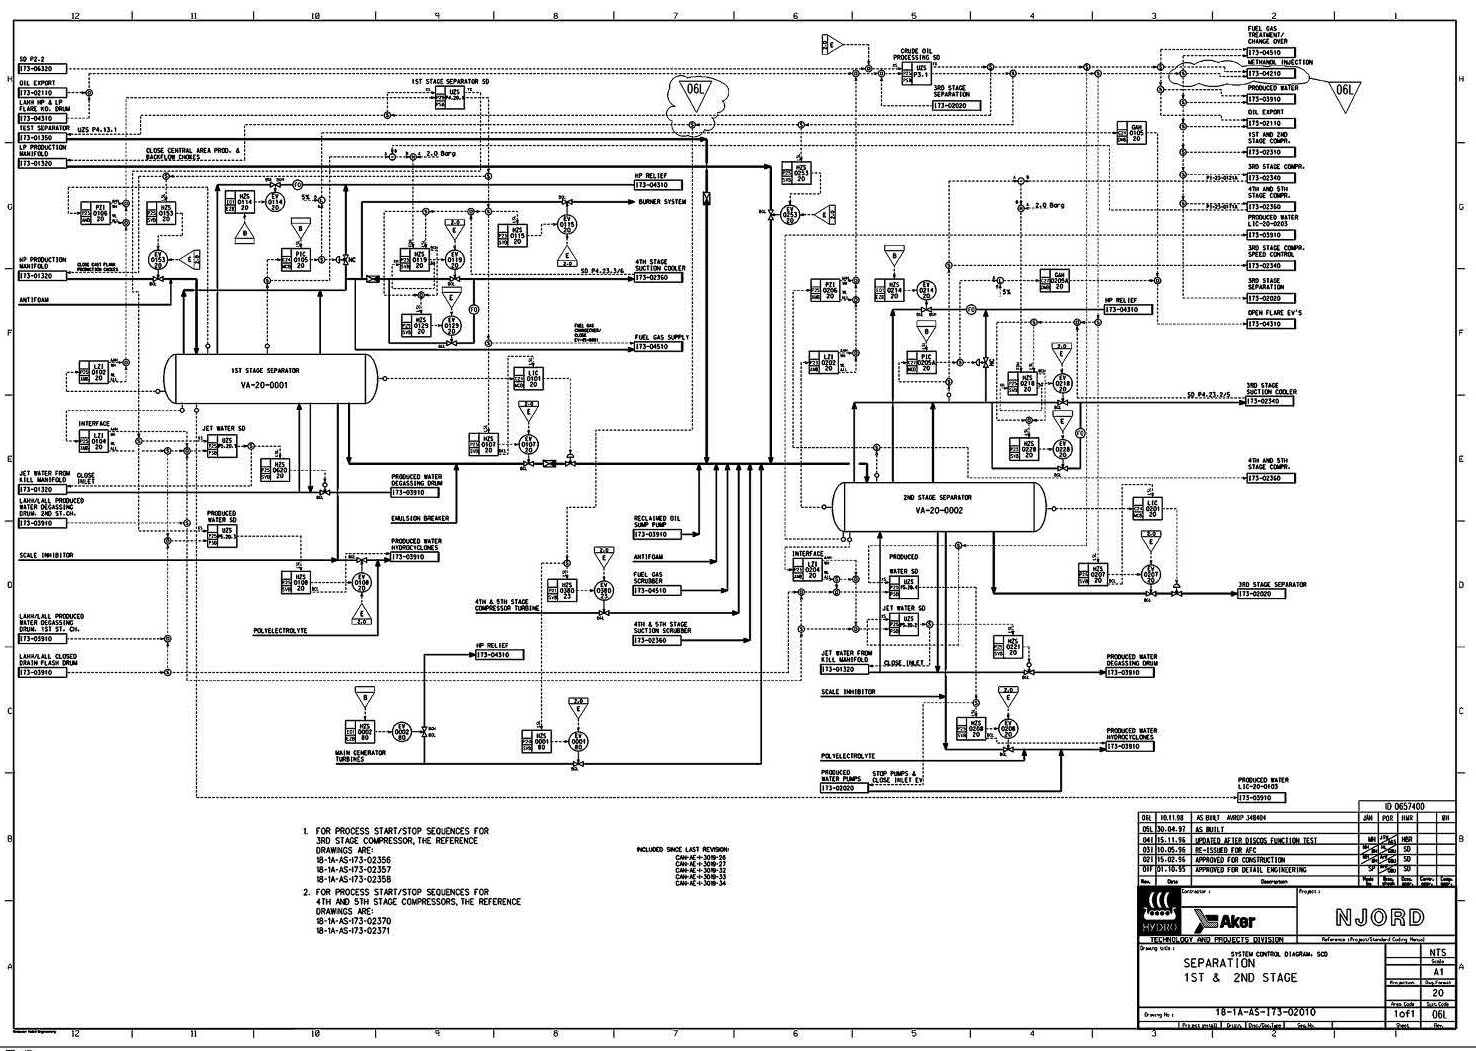 Allison 1000 Transmission Wiring Diagram likewise US7649450 furthermore Ir Beam Detector Wiring Diagram further How To Read Car Wiring Diagrams also Fire Alarm Bell Symbol. on fire alarm system wiring diagram